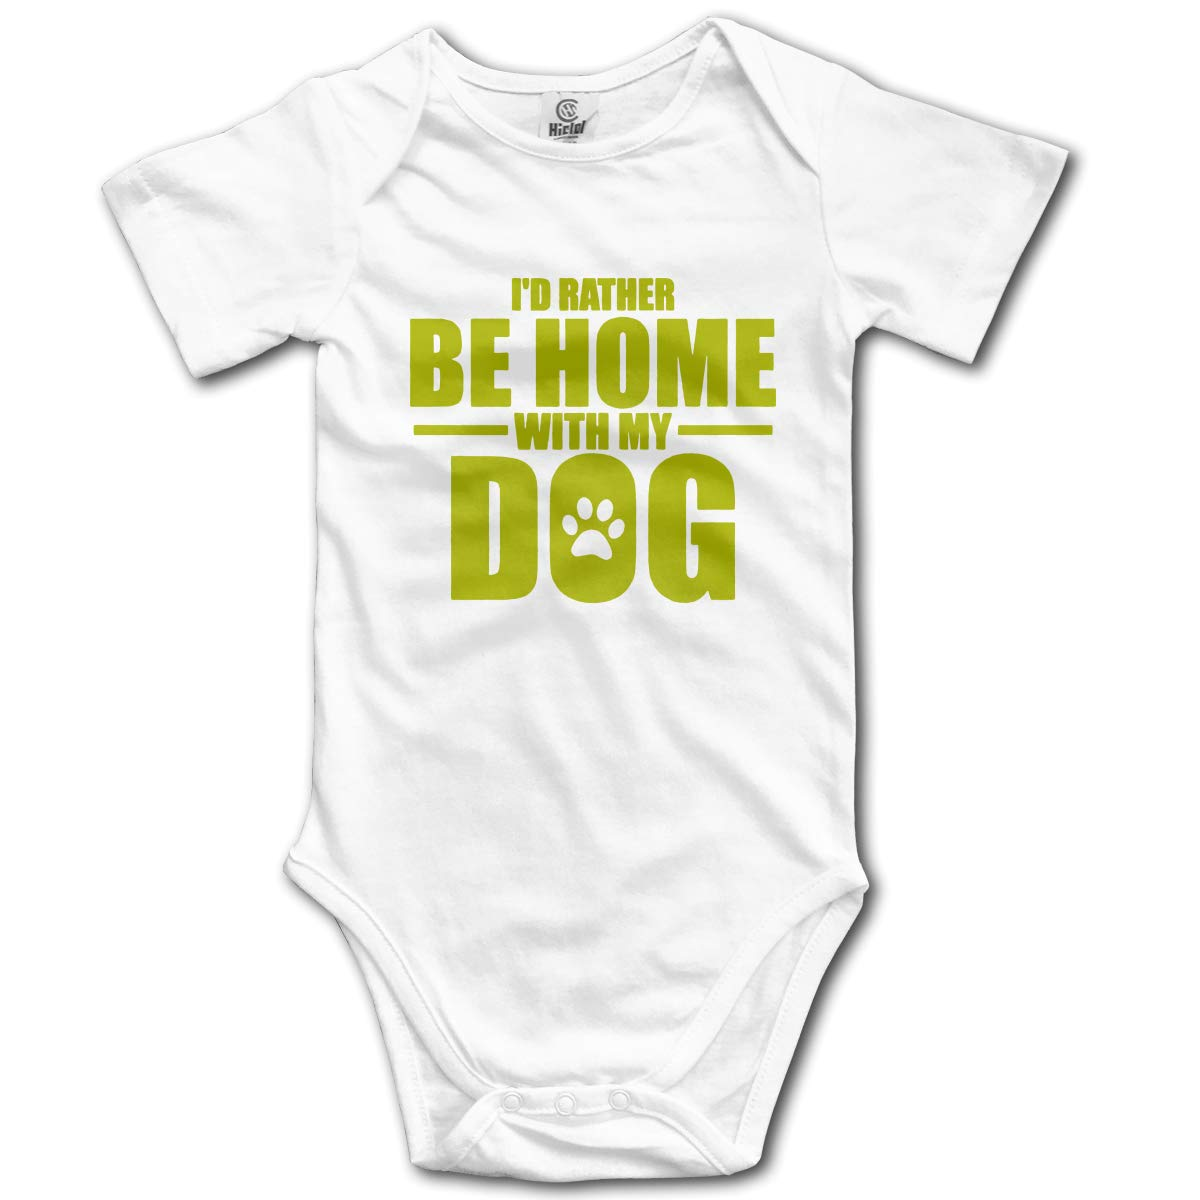 Id Rather Be Home with My Dog Baby Boys Or Girls 100/% Organic Cotton Layette Bodysuit 0-24 Months